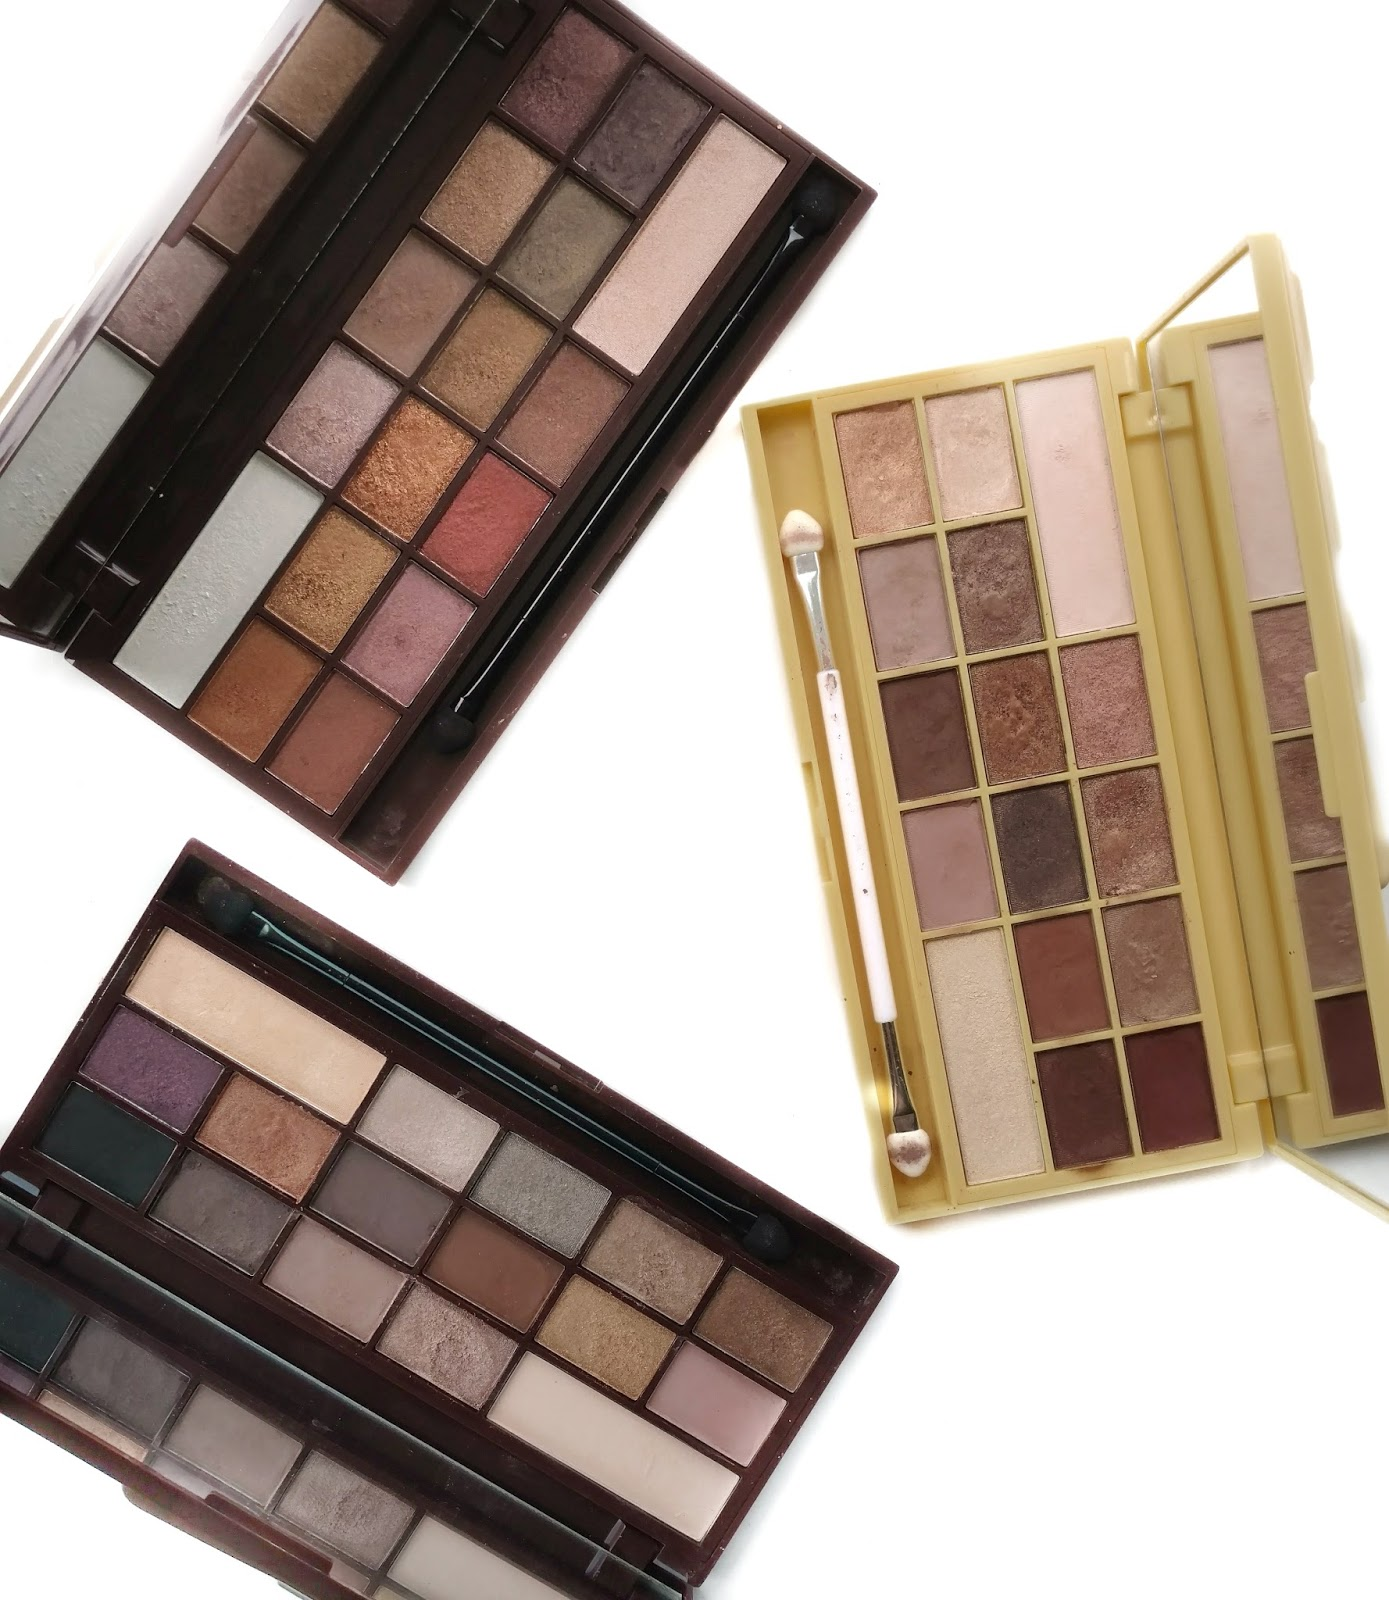 Makeup Revolution Chocolate Palettes